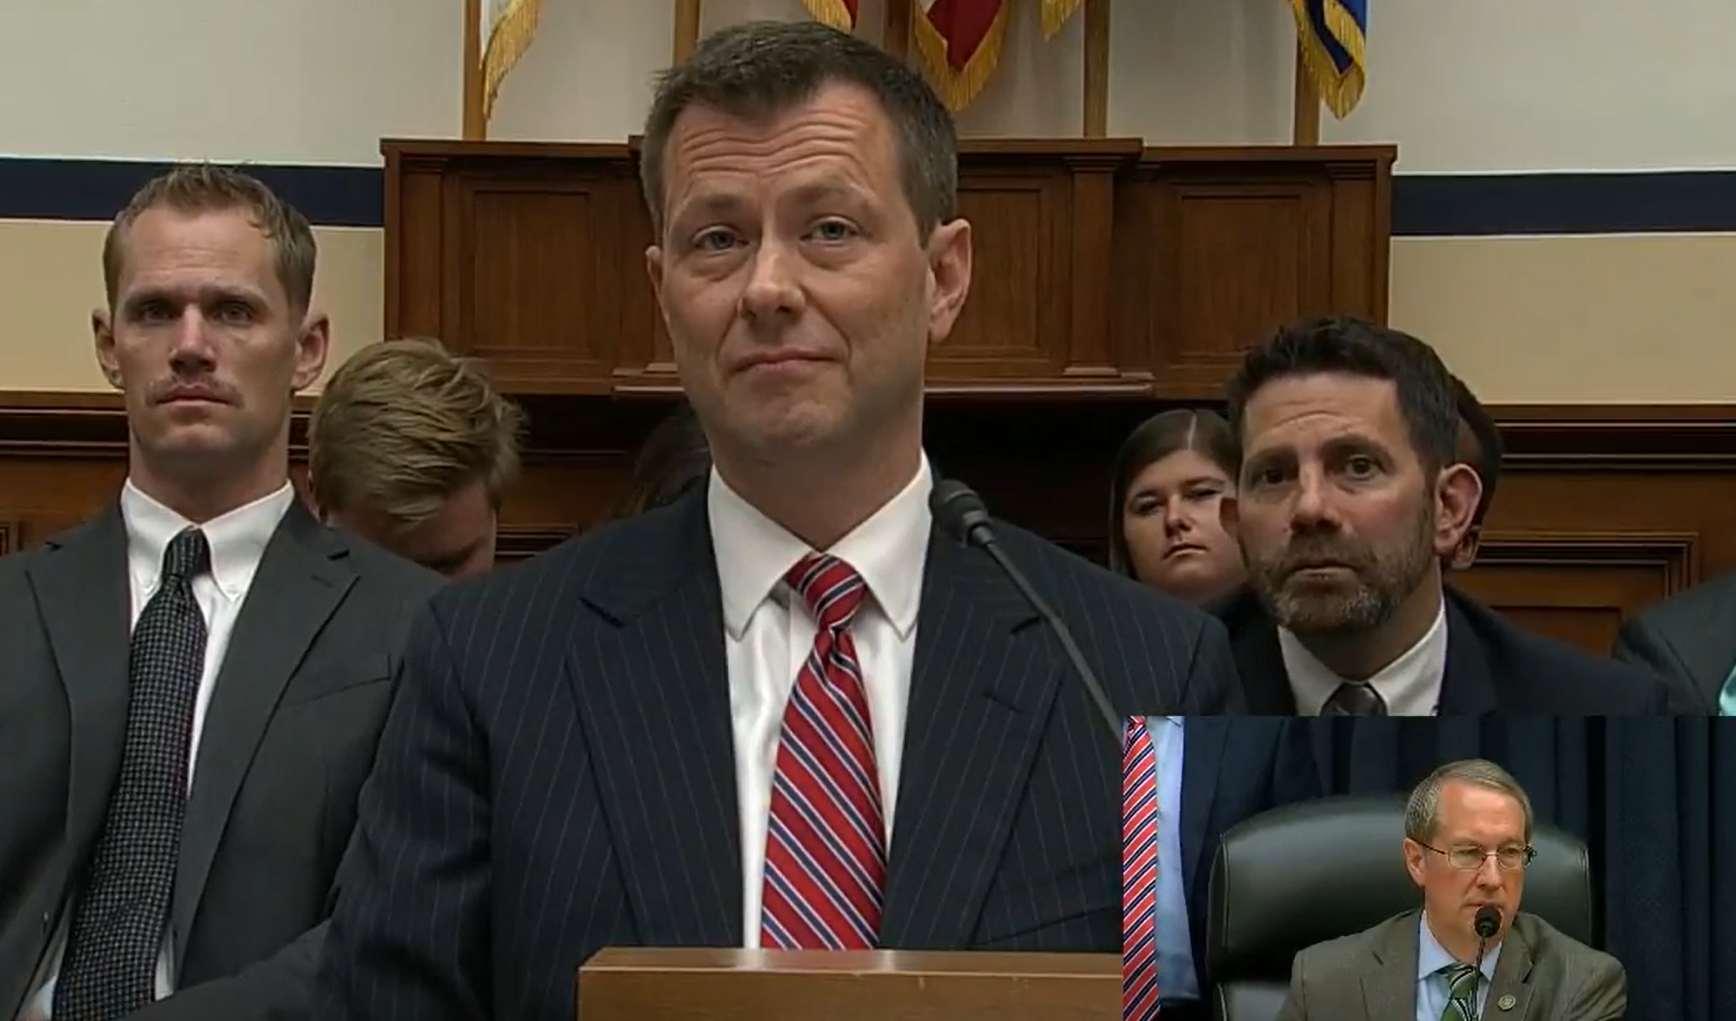 FBI's Peter Strzok testifies on Trump bias before House panel